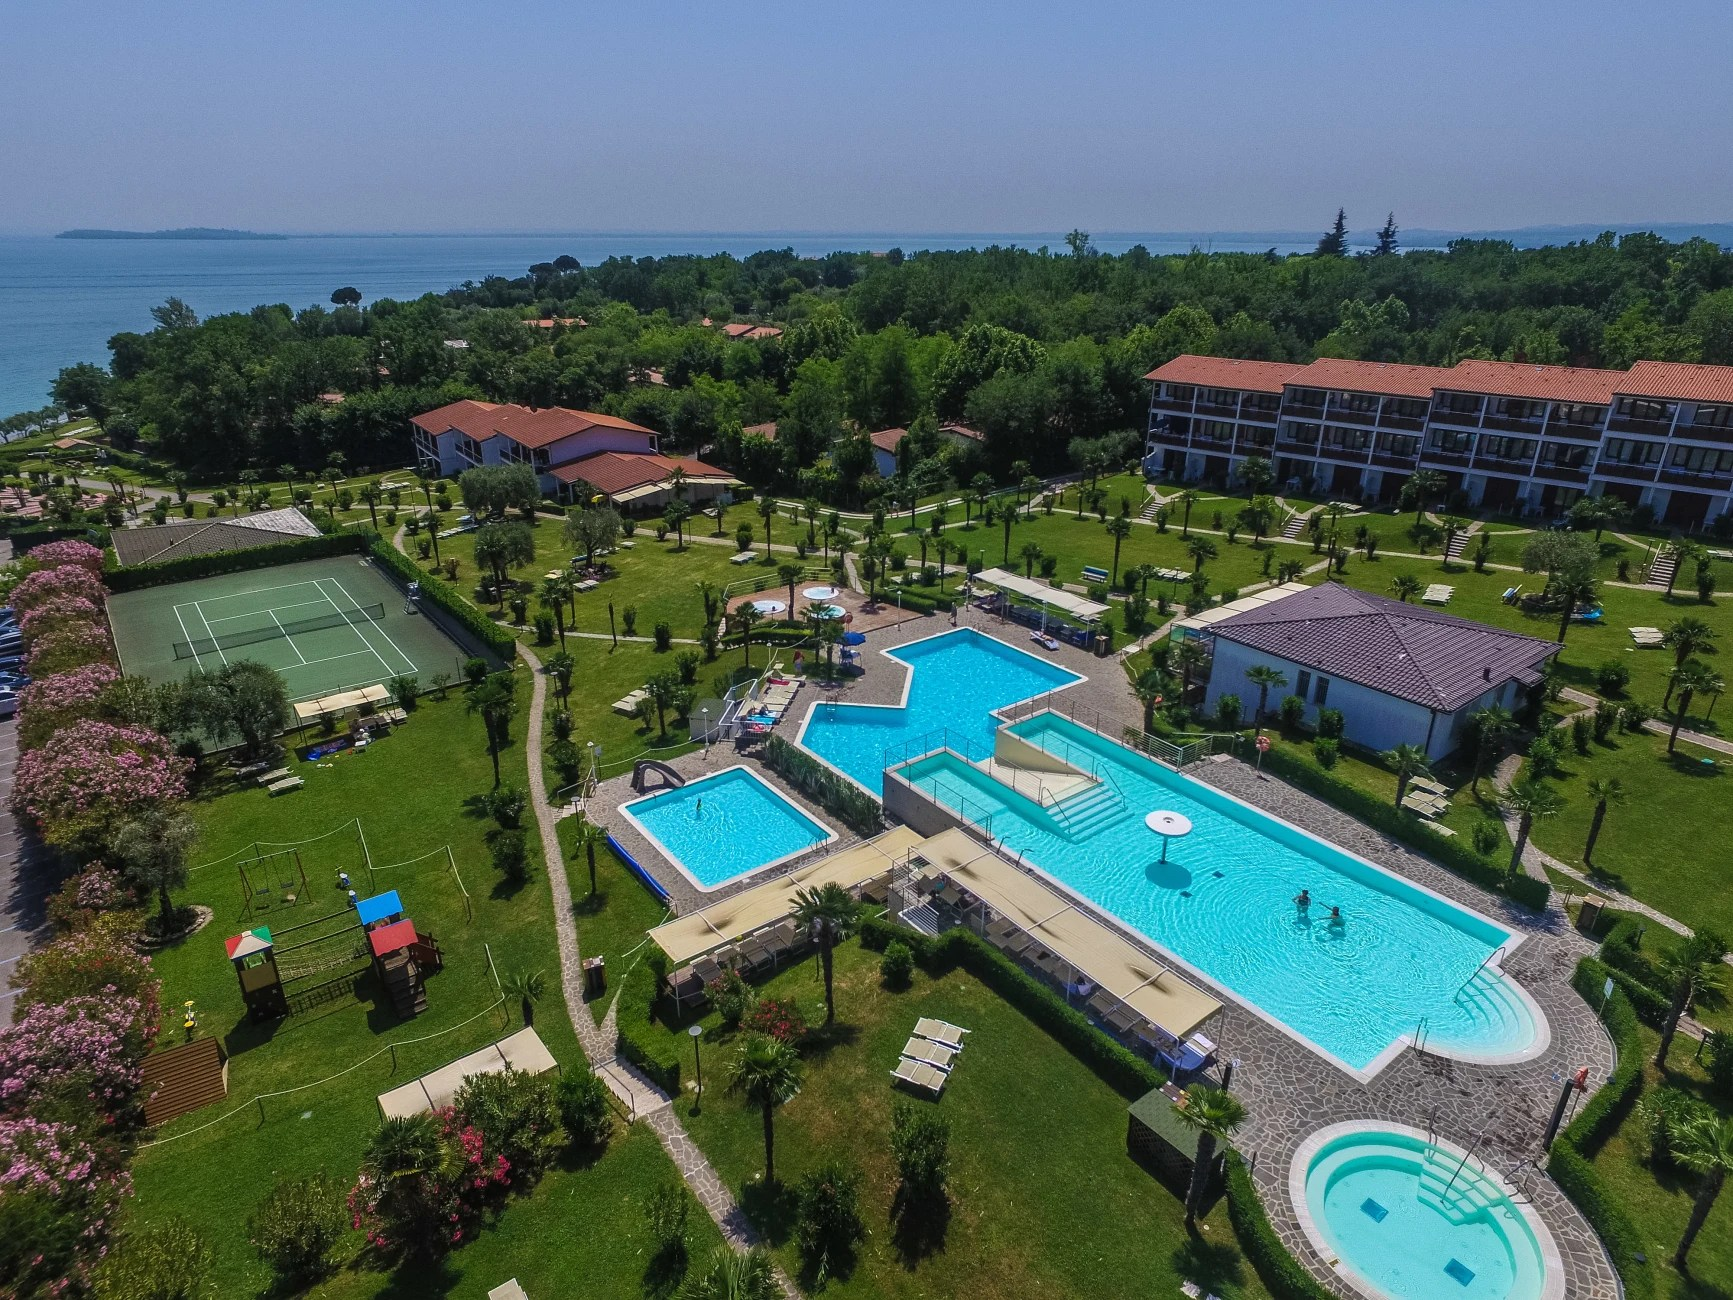 Hotel Caminetto Garda Serviced Apartment San Sivino Manerba Del Garda Trivago Co Uk